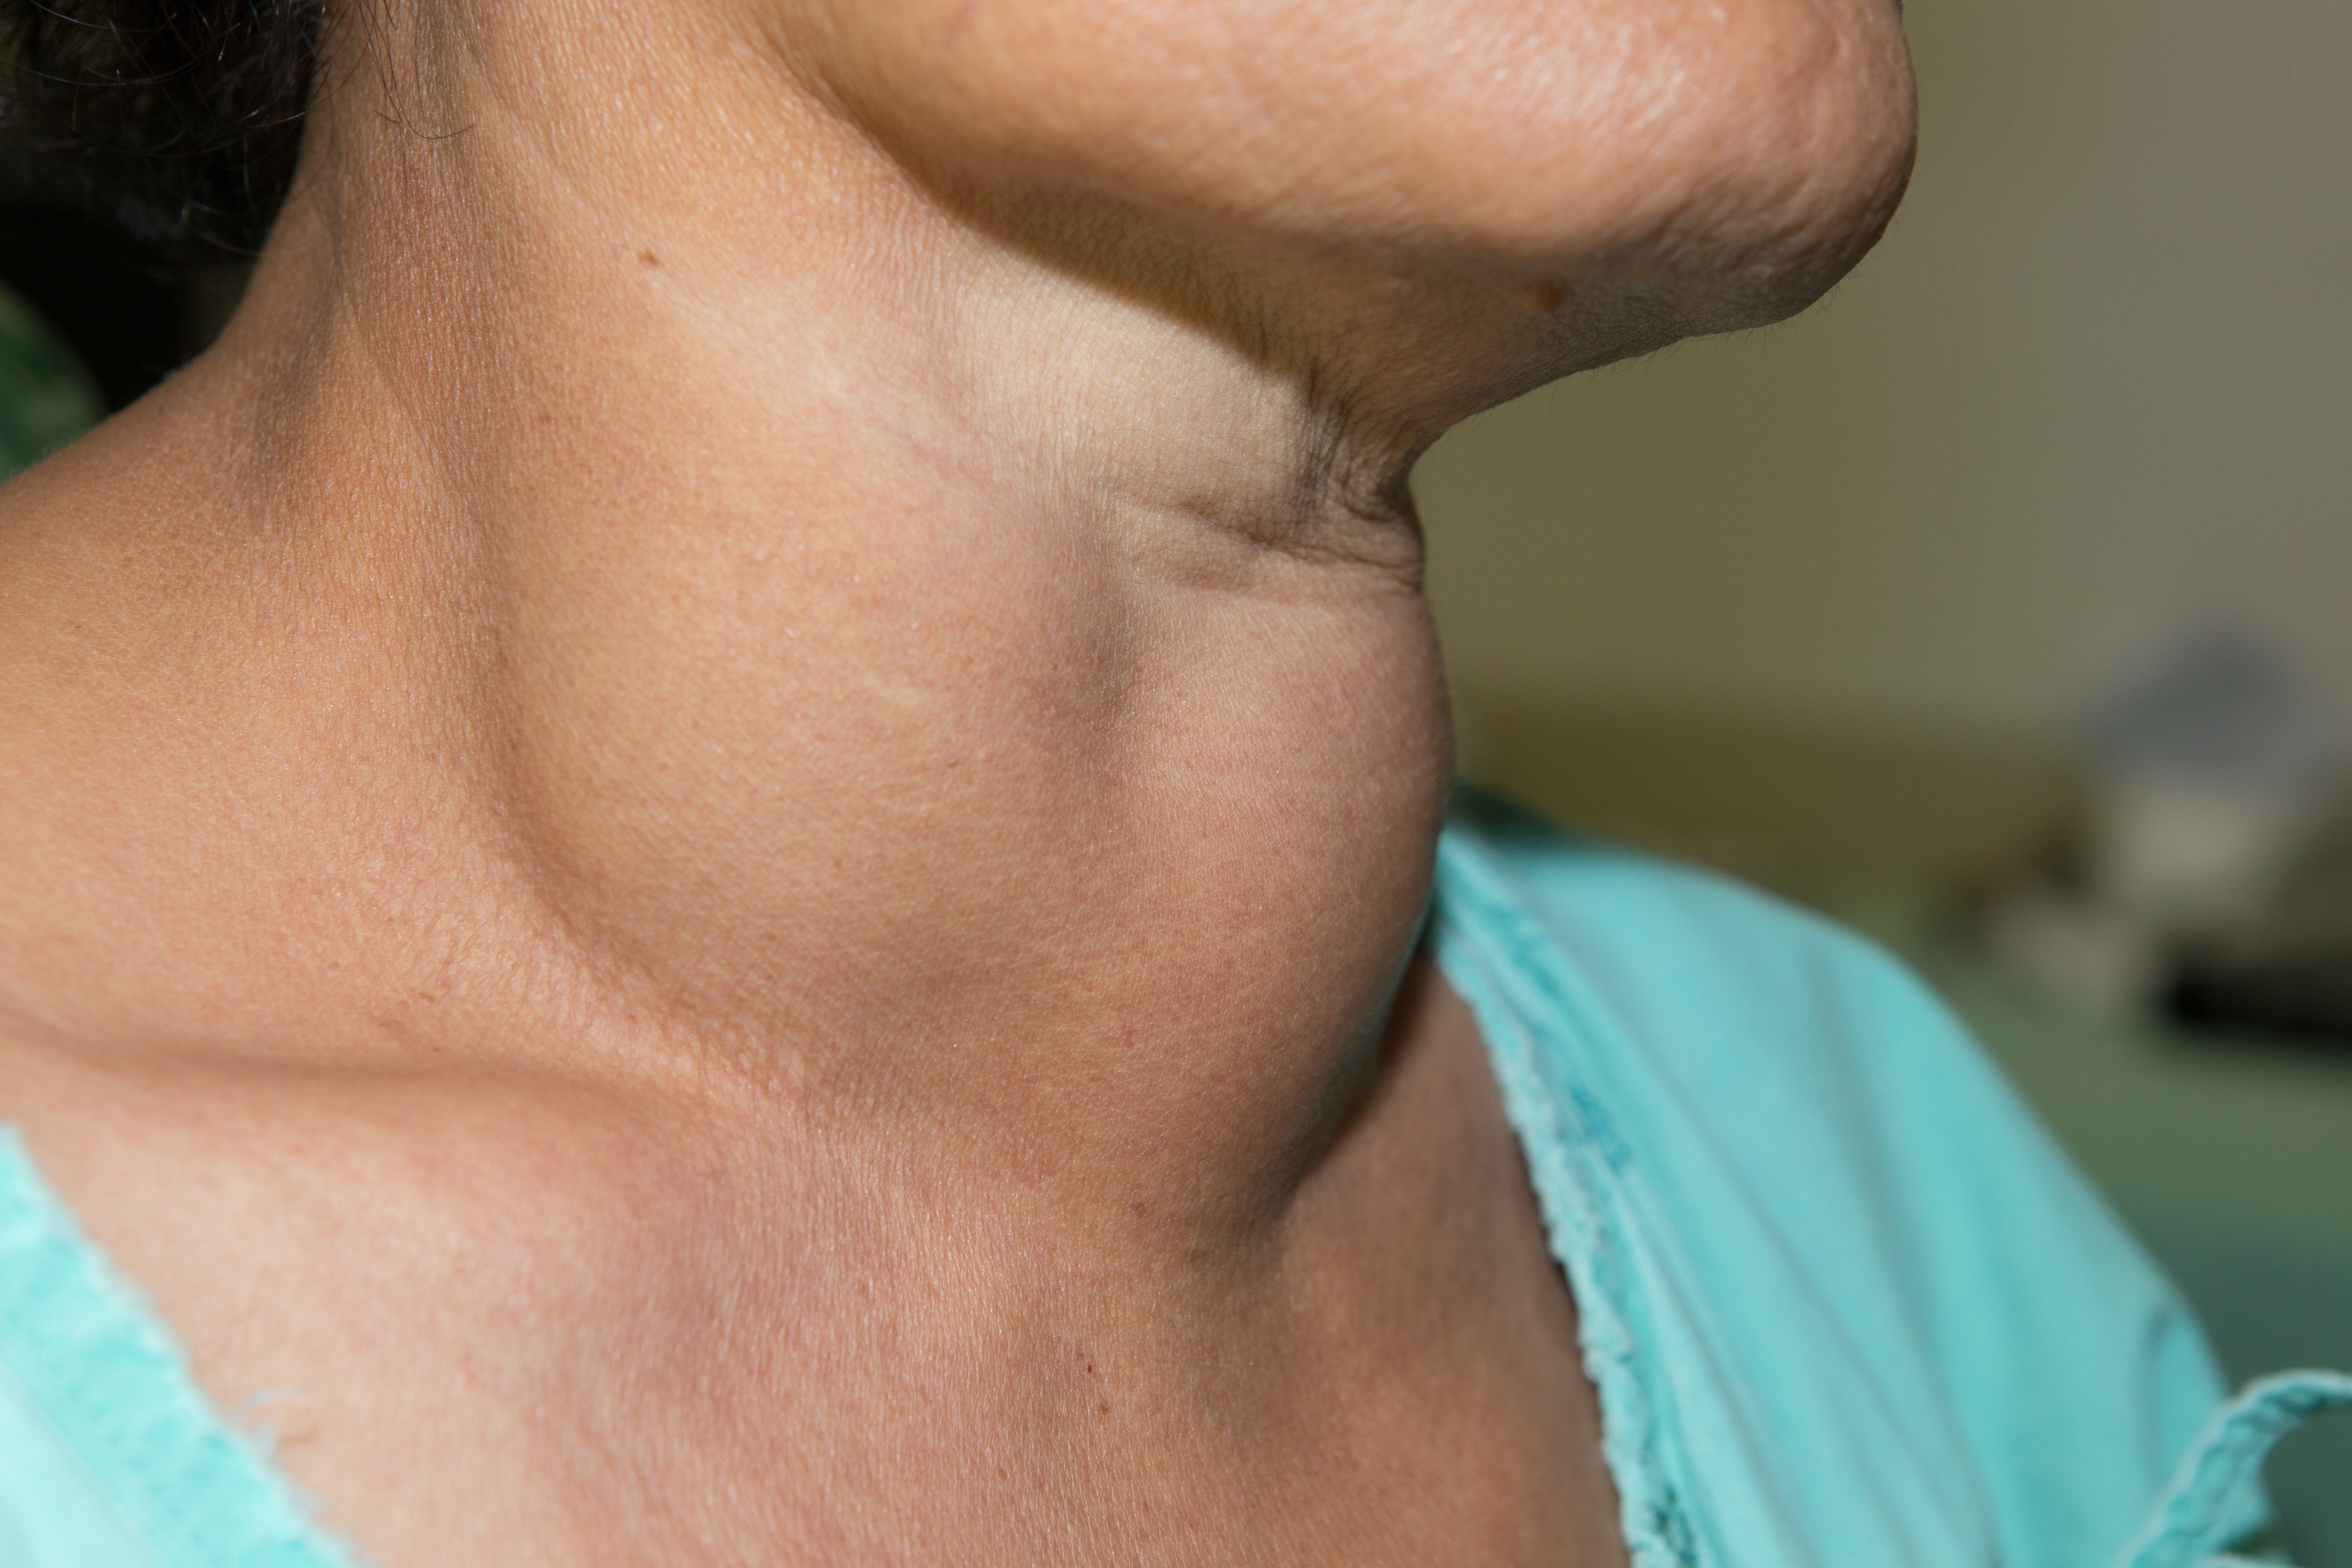 An image depicting a person suffering from neck lump symptoms